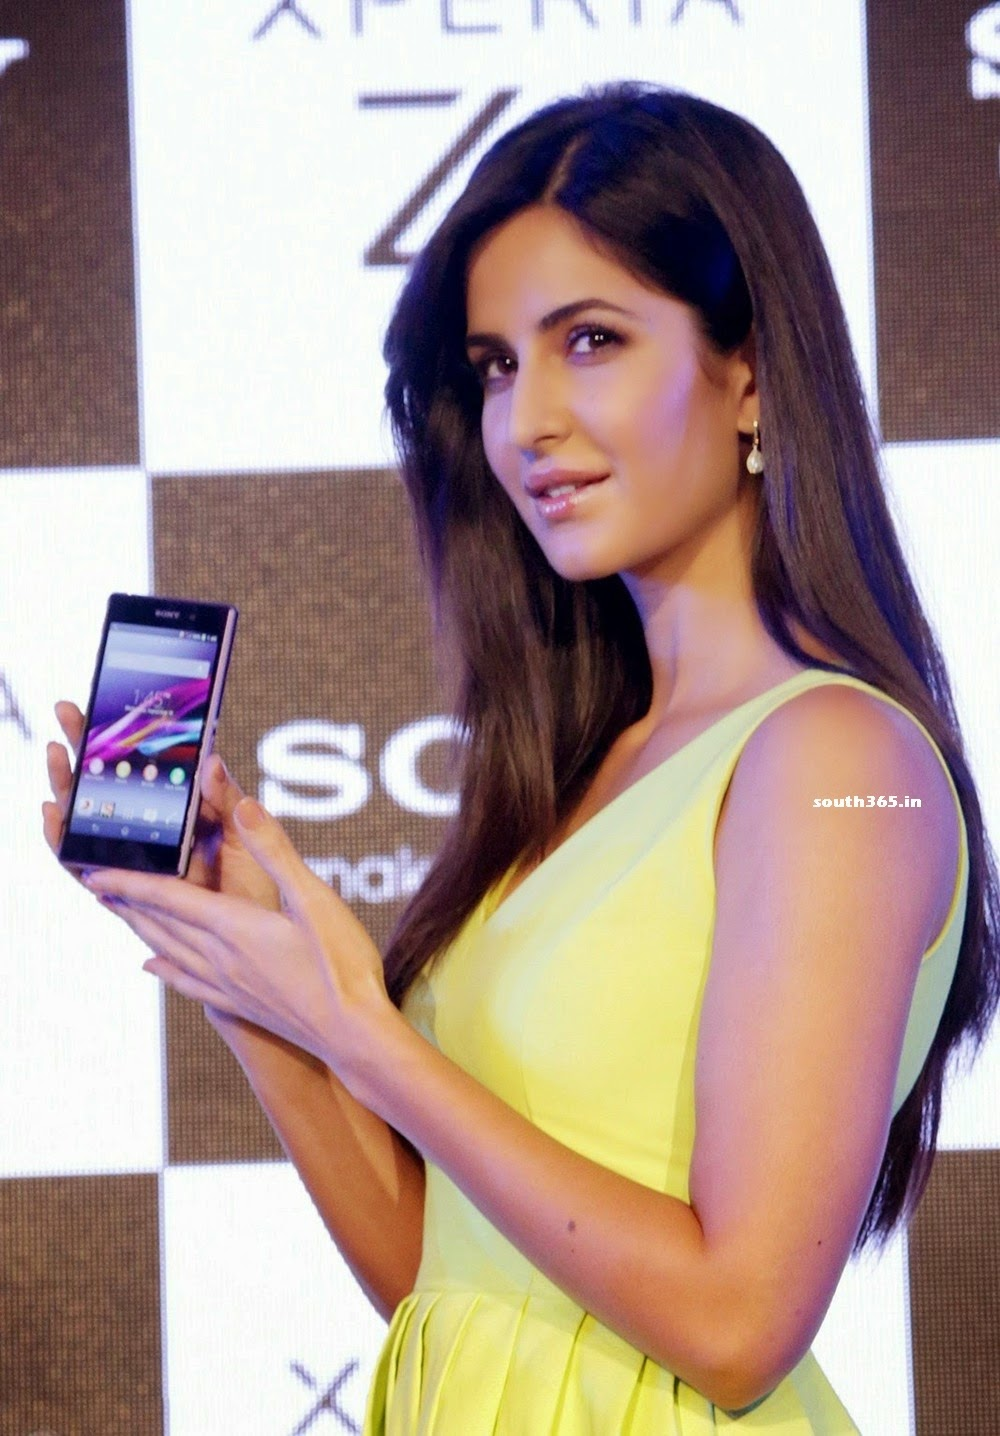 ... India Latest News, HQ Images, New Pictures and HD Wallpapers Gallery